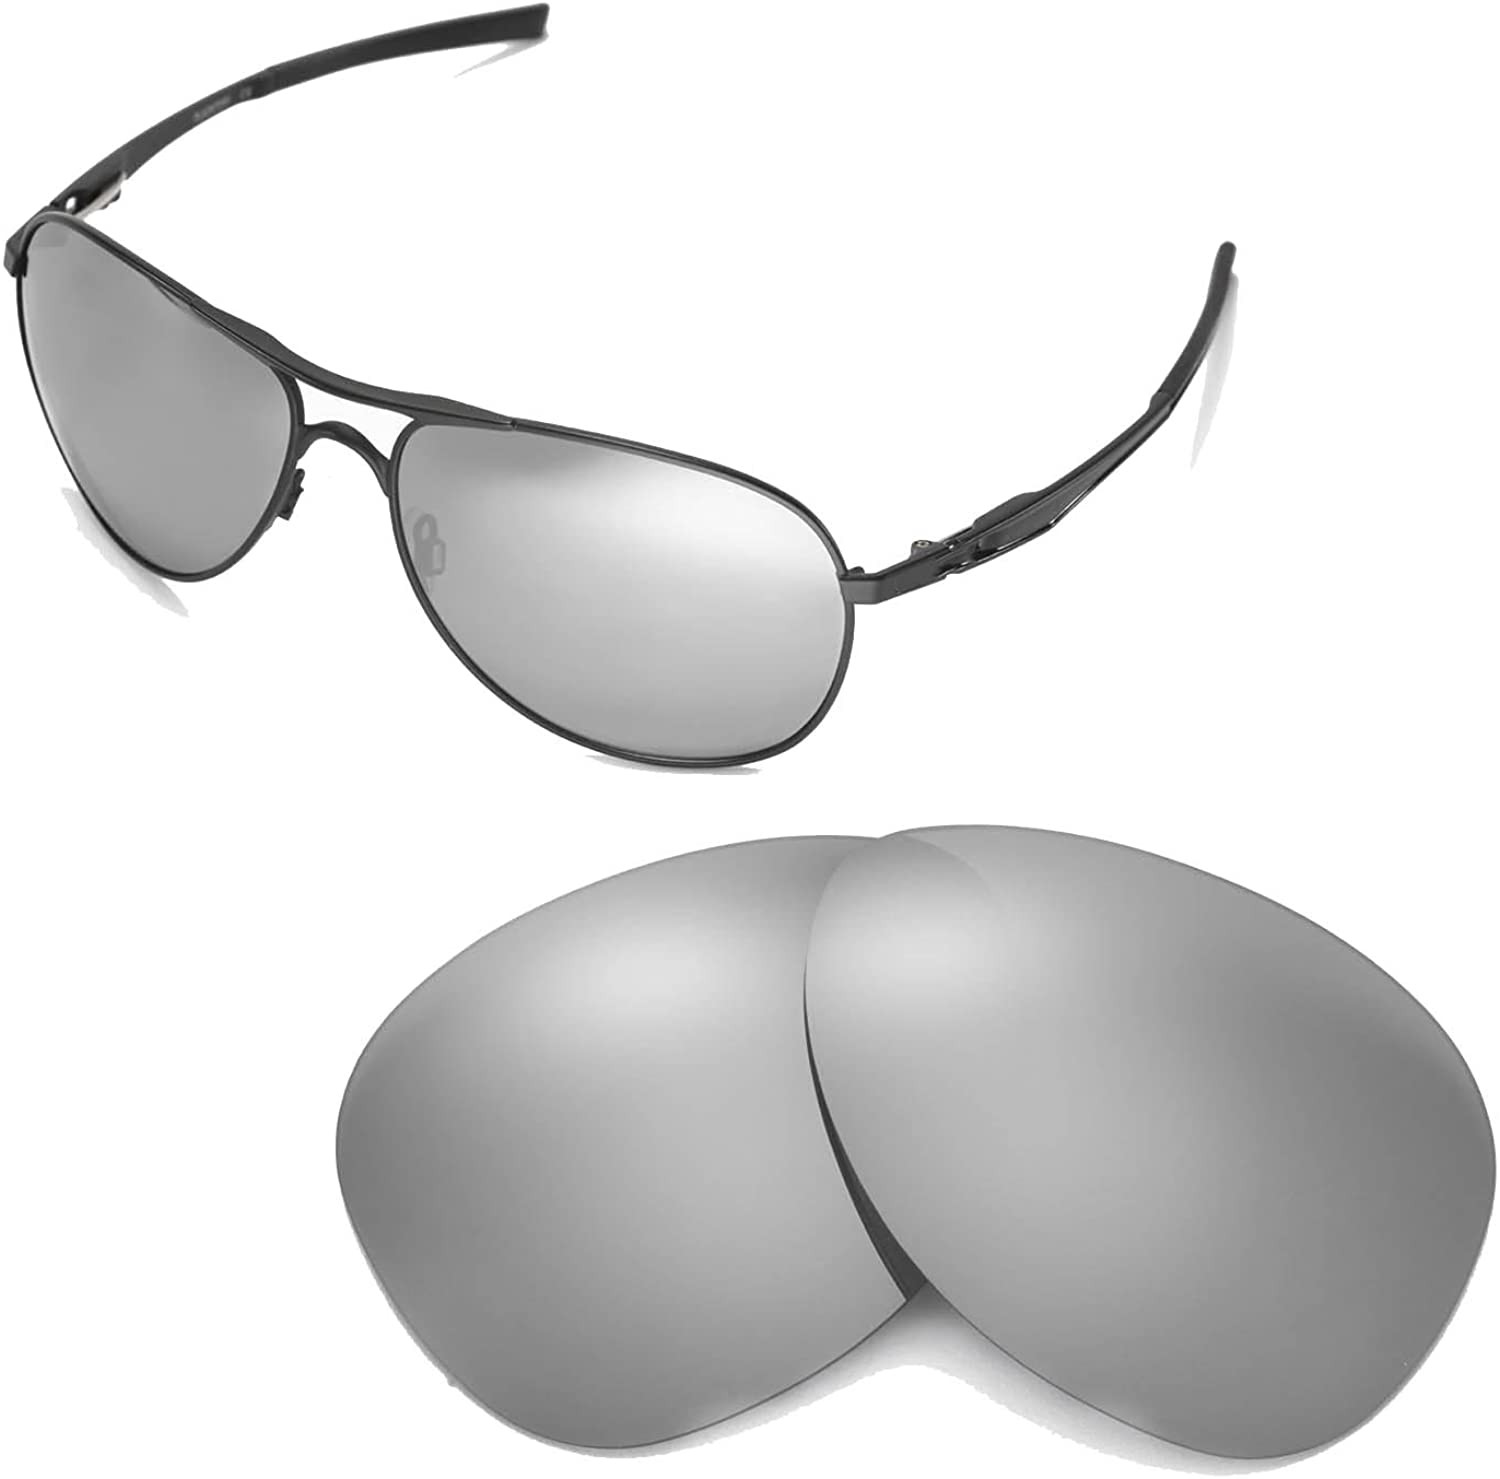 Walleva Replacement Lenses for Oakley Plaintiff - 6 Options Available